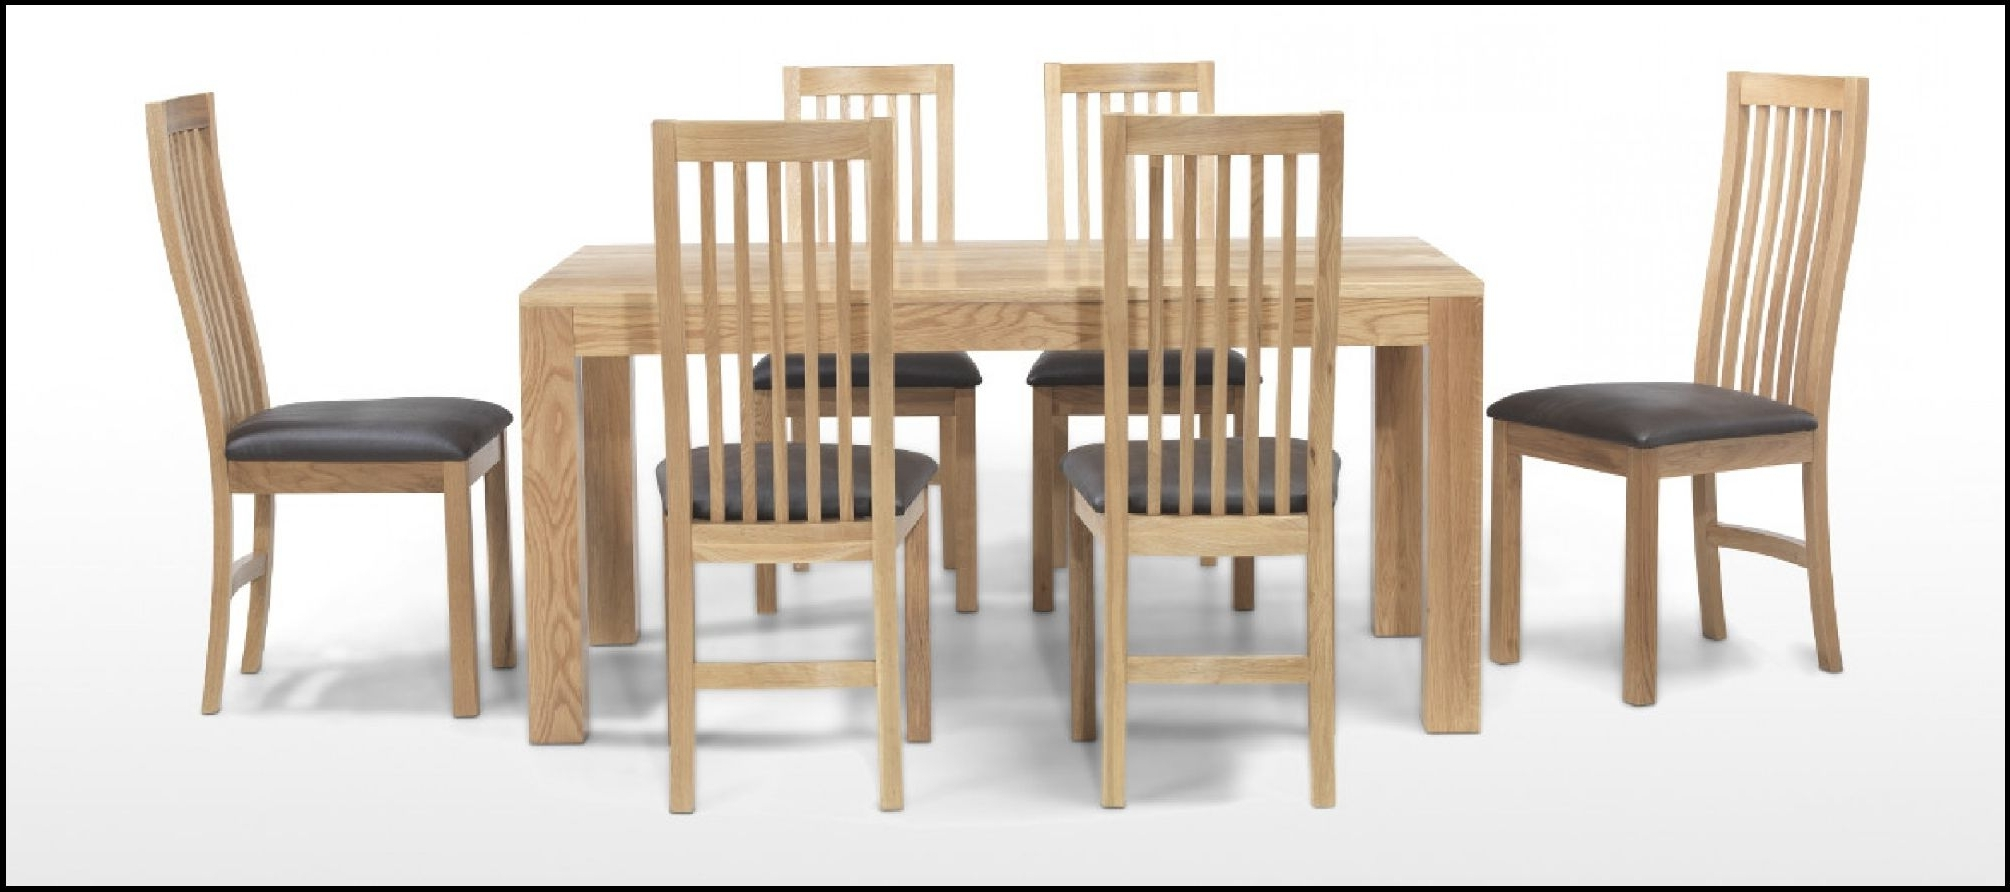 Popular Oak Dining Tables Sets In Charming How To Get The Oak Dining Sets With Round Oak Dining Table (View 24 of 25)